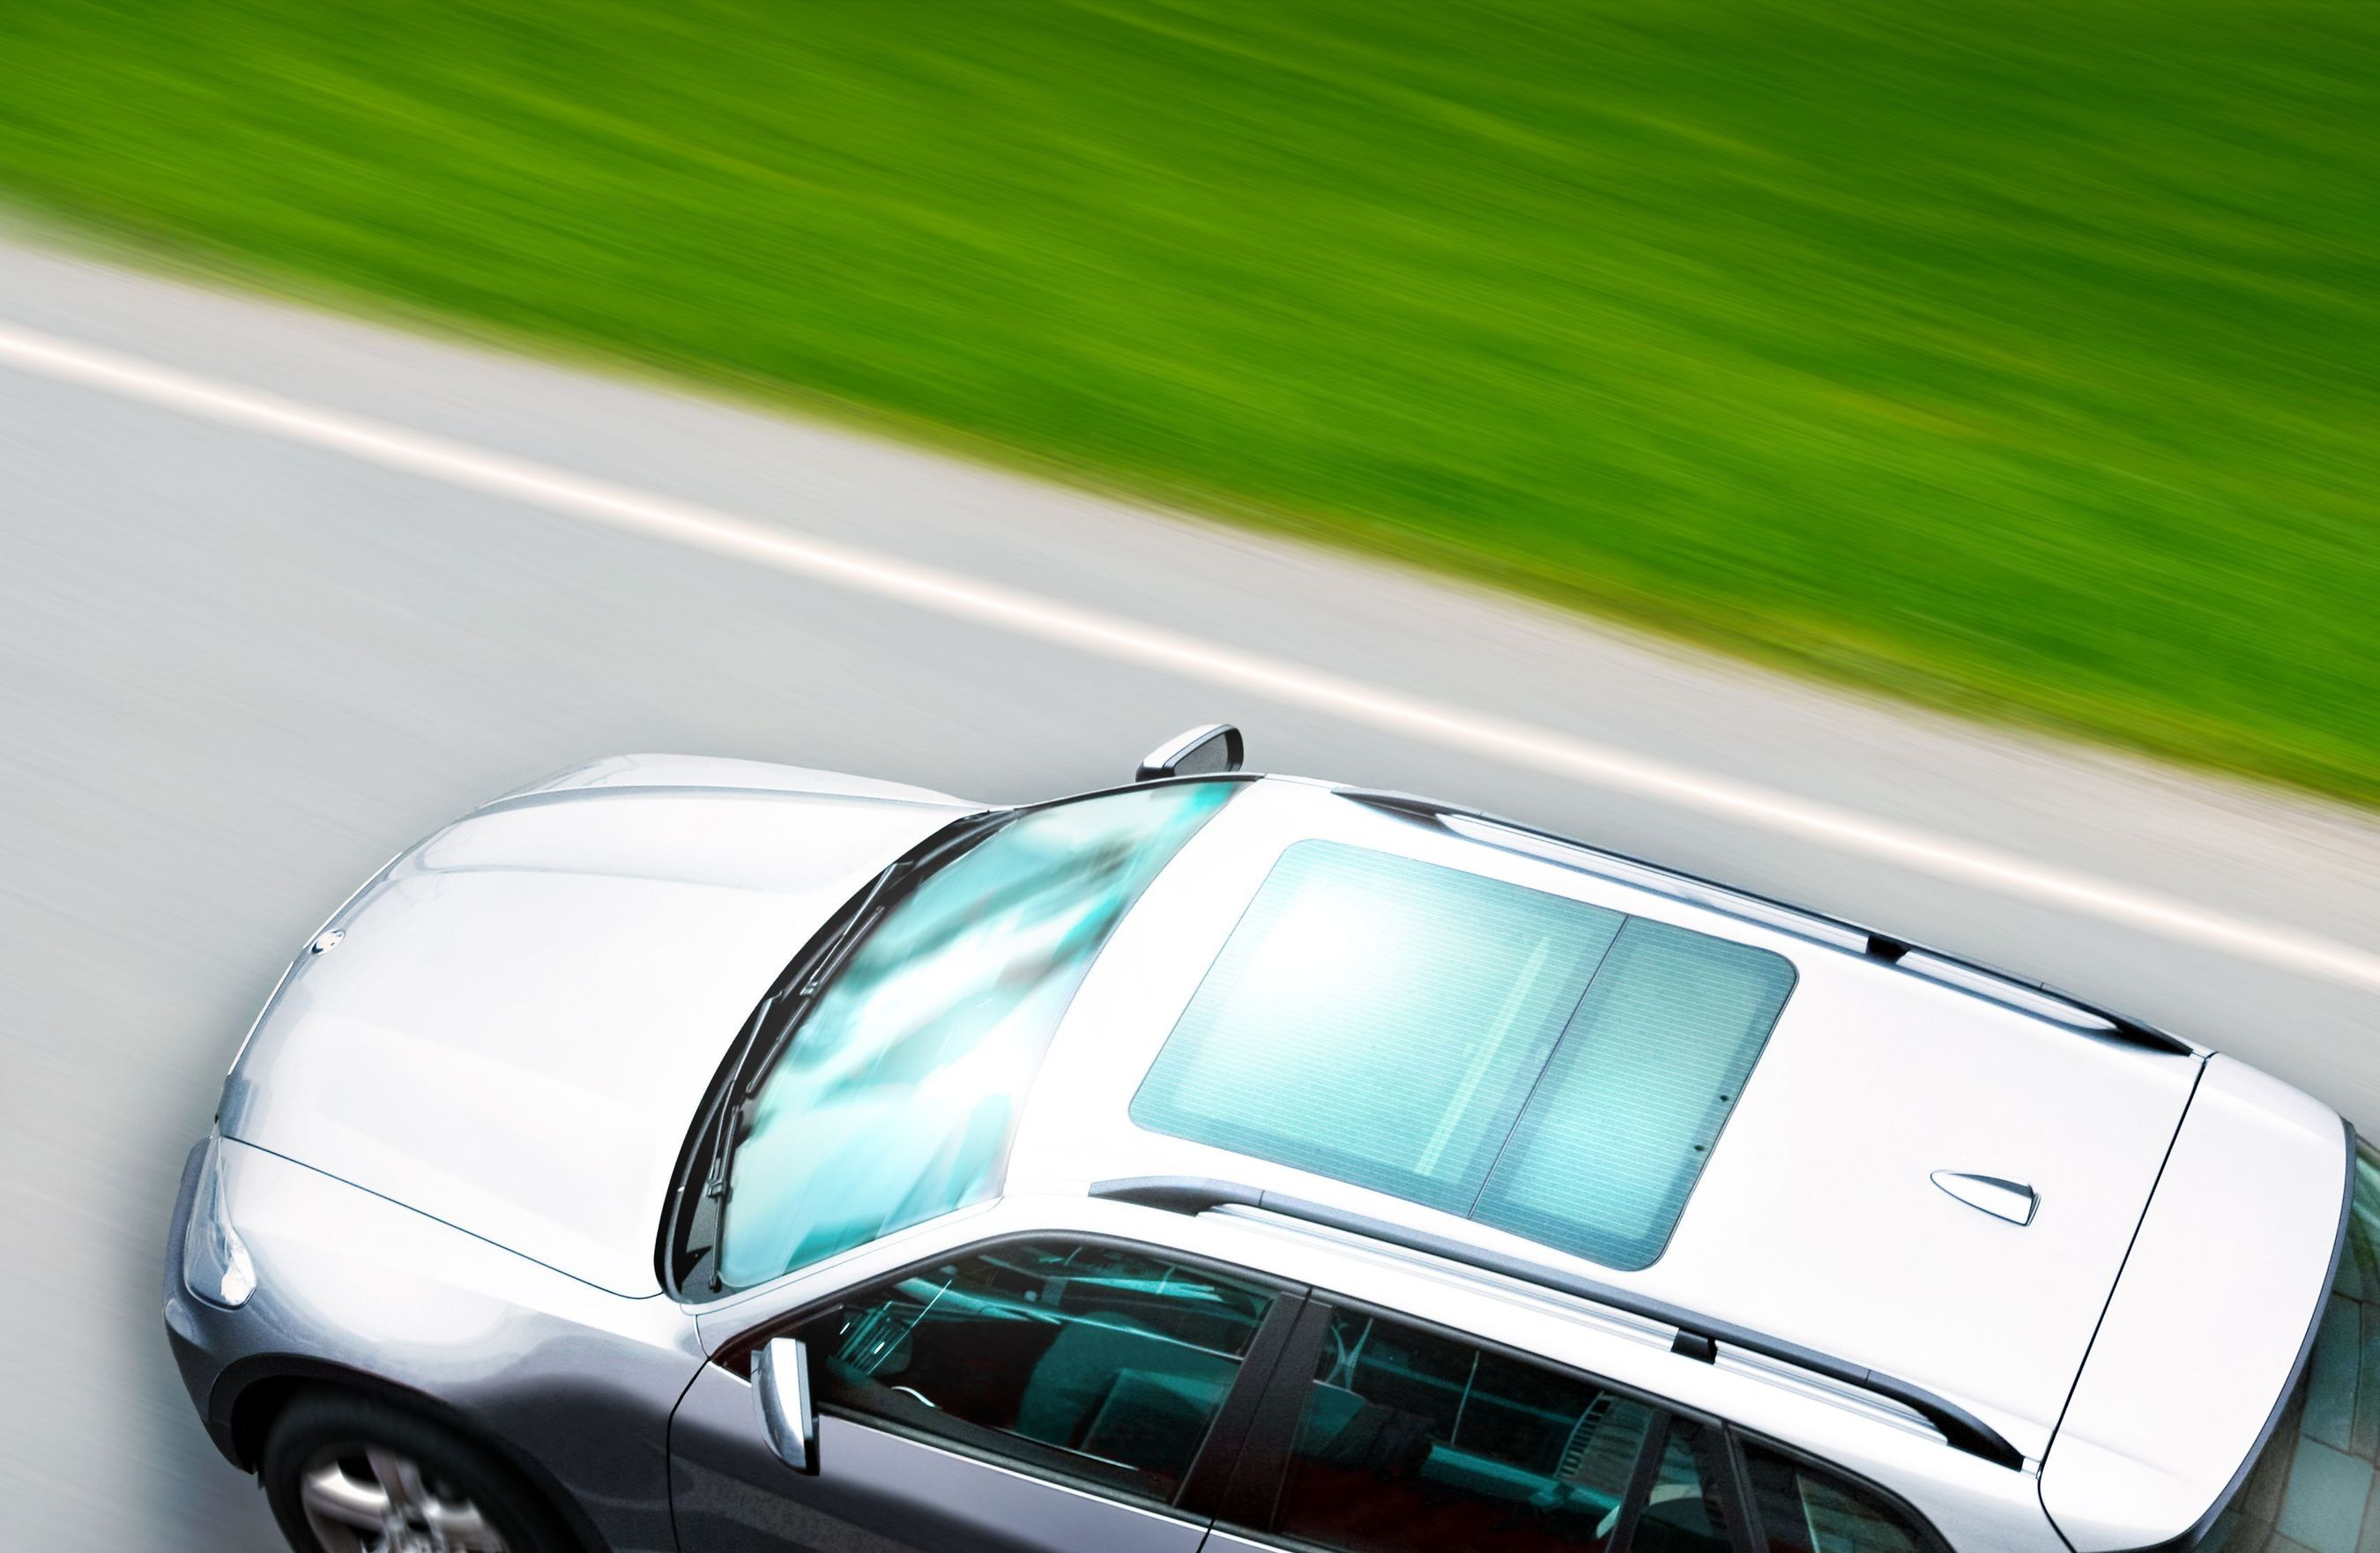 With HeliaFilm, glass sunroofs can now act as photovoltaic harvesters to top up car batteries and allow the car manufacturers to claim Eco-innovation credits towards CO2 emission goals. (PRNewsFoto/Heliatek GmbH)